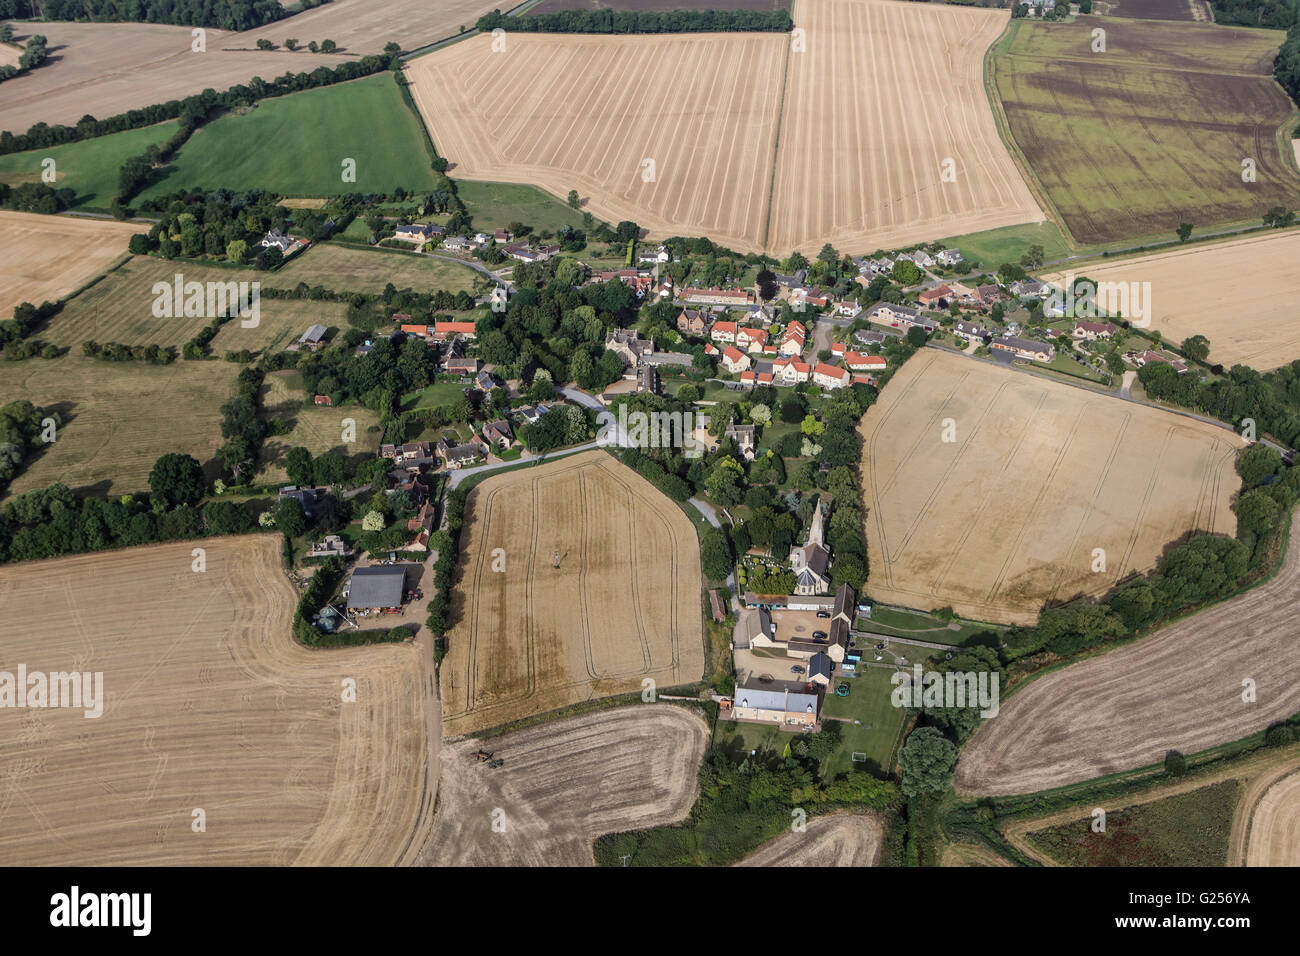 An aerial view of the hamlet of Braceborough, South Lincolnshire - Stock Image